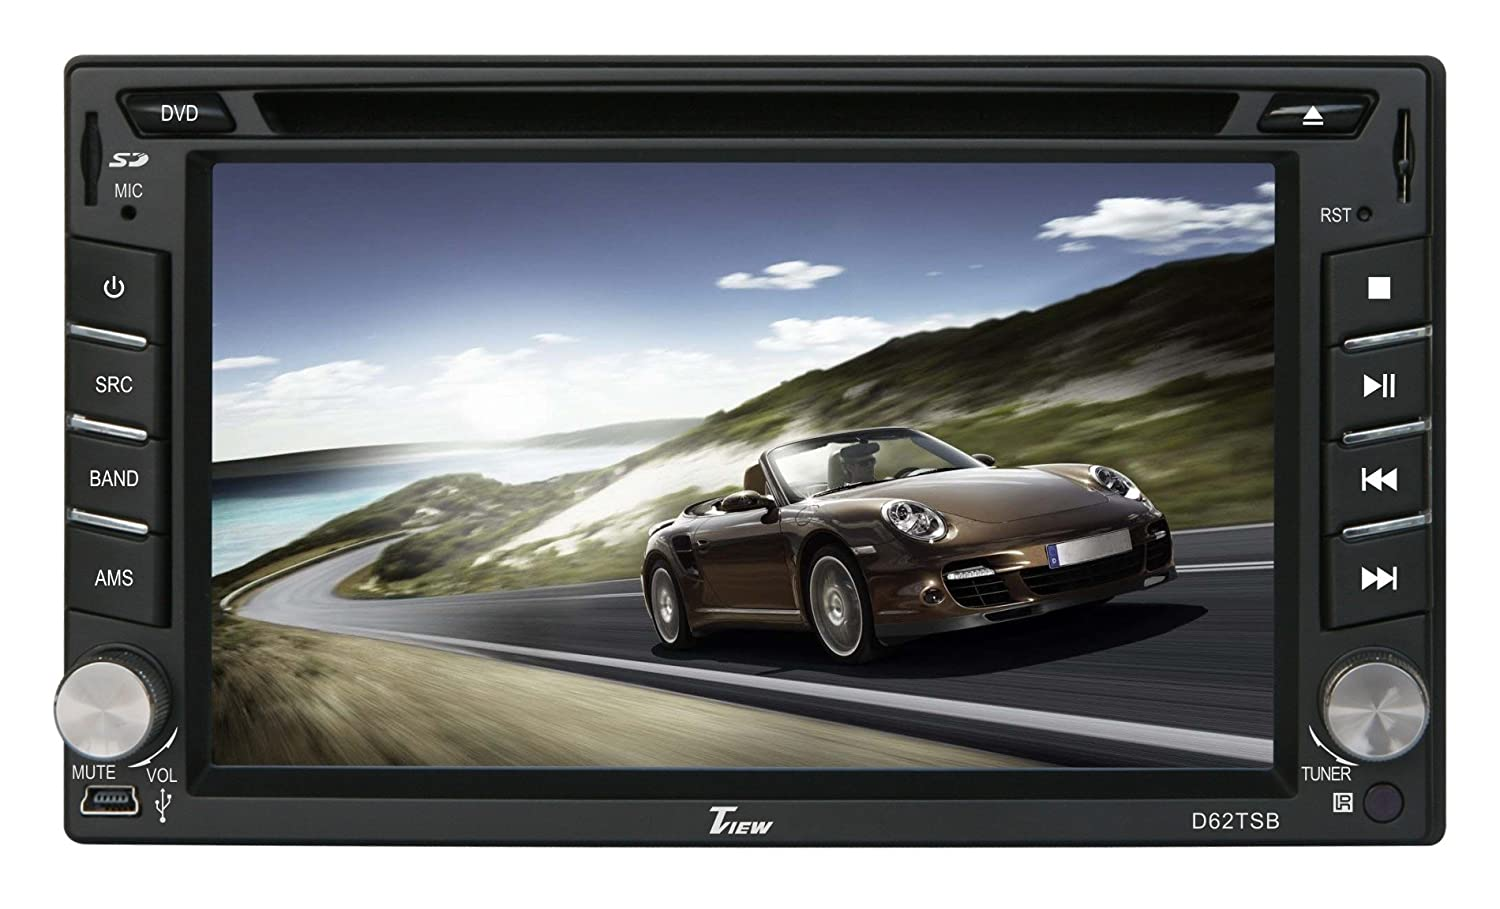 71N8 eVkMJL._SL1500_ amazon com tview d62tsb 6 2 inch double din touch screen with tview d75tsb wiring harness at aneh.co